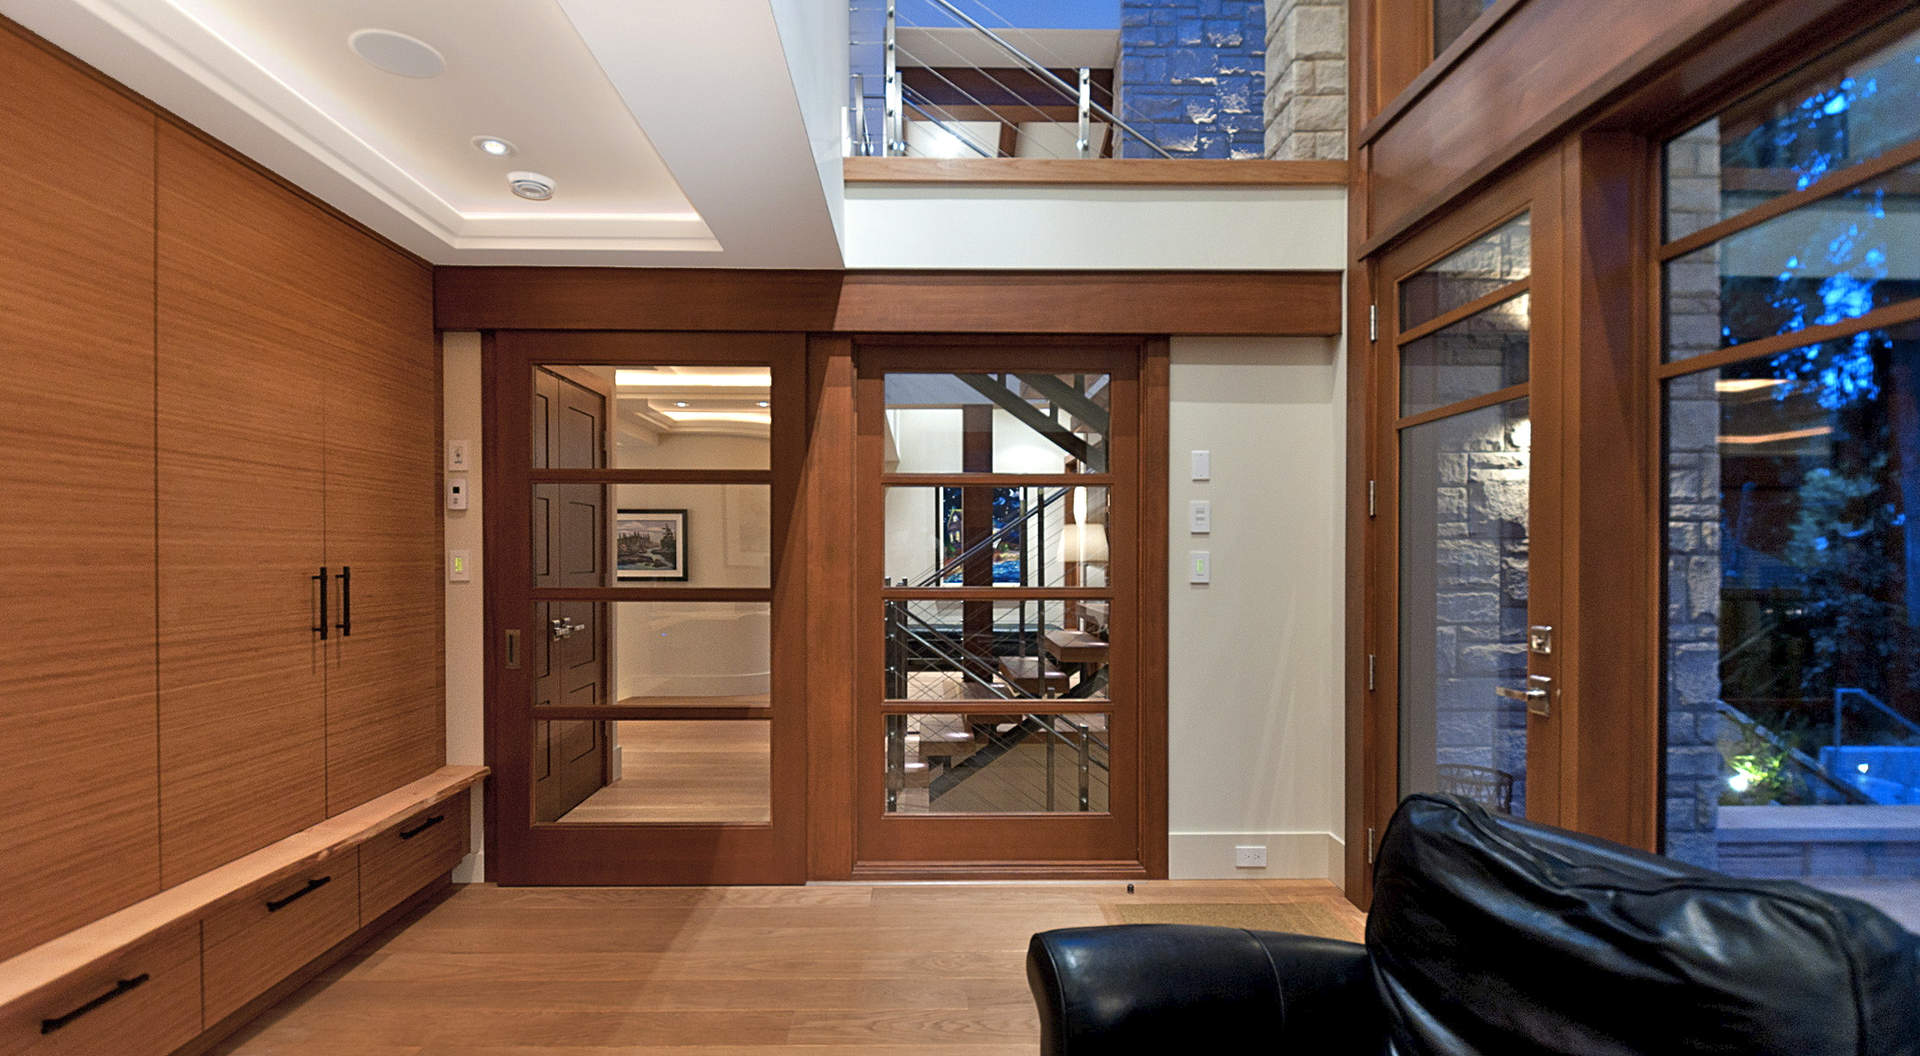 Custom Windows, Doors, & Built-in Cabinetry